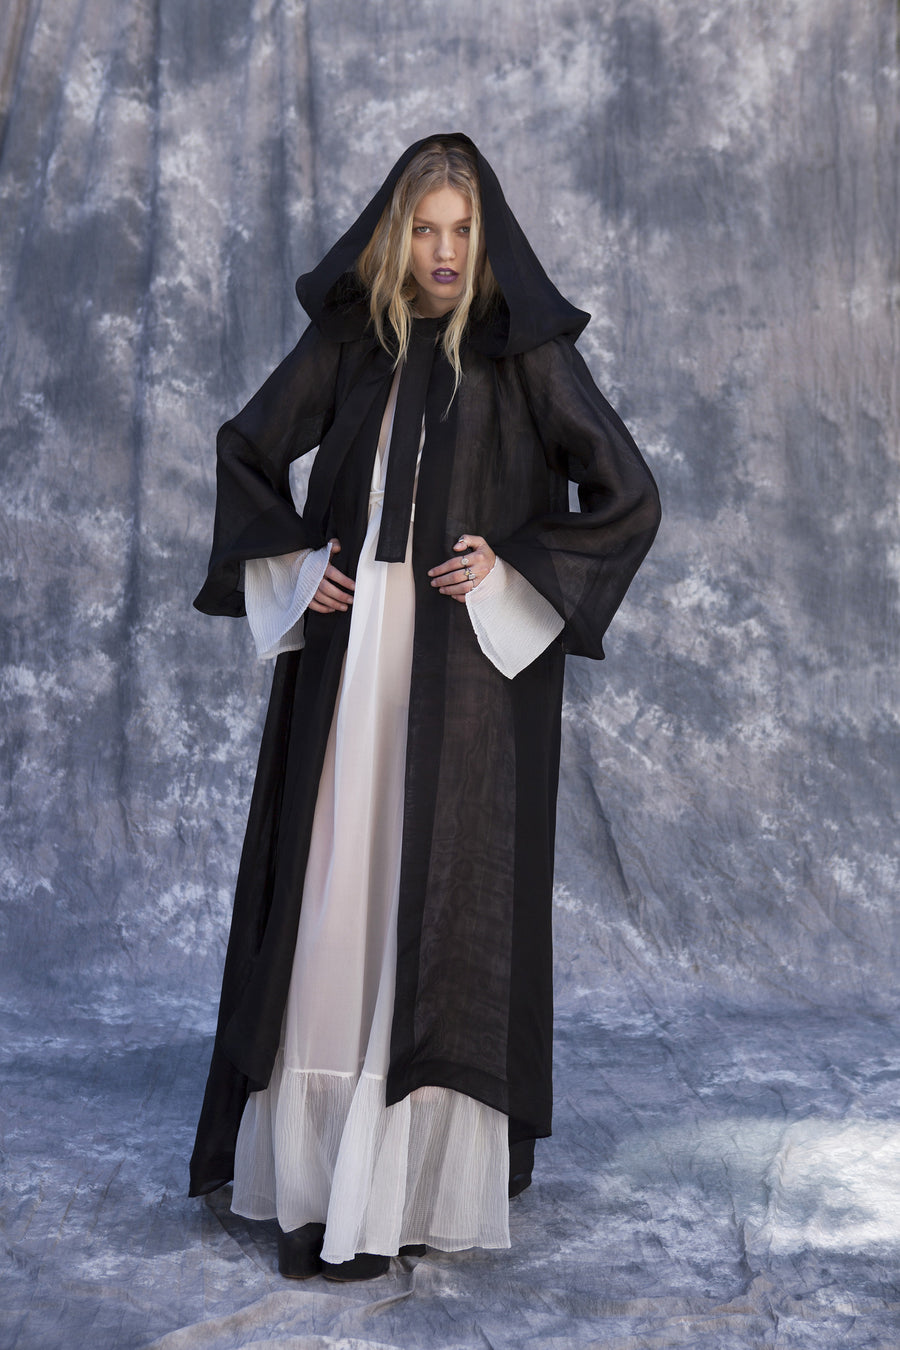 Maggie Laine IMG model Wendy Nichol New York Clothing Designer Handmade in NYC New York City SS17 Fashion Runway Show Signals to the Mothership Made to Order Custom Tailoring Made to Measure Death Valley Black Sheer Hood Hooded Cape Cloak Coat Belle Sleeves Long Train Oversized Hood White Sheer Apron Cross Tie Pleated Sleeves Dress Victorian Edwardian Gothic Goth Pagan Witch High Priestess Sorceress Magician Wizard